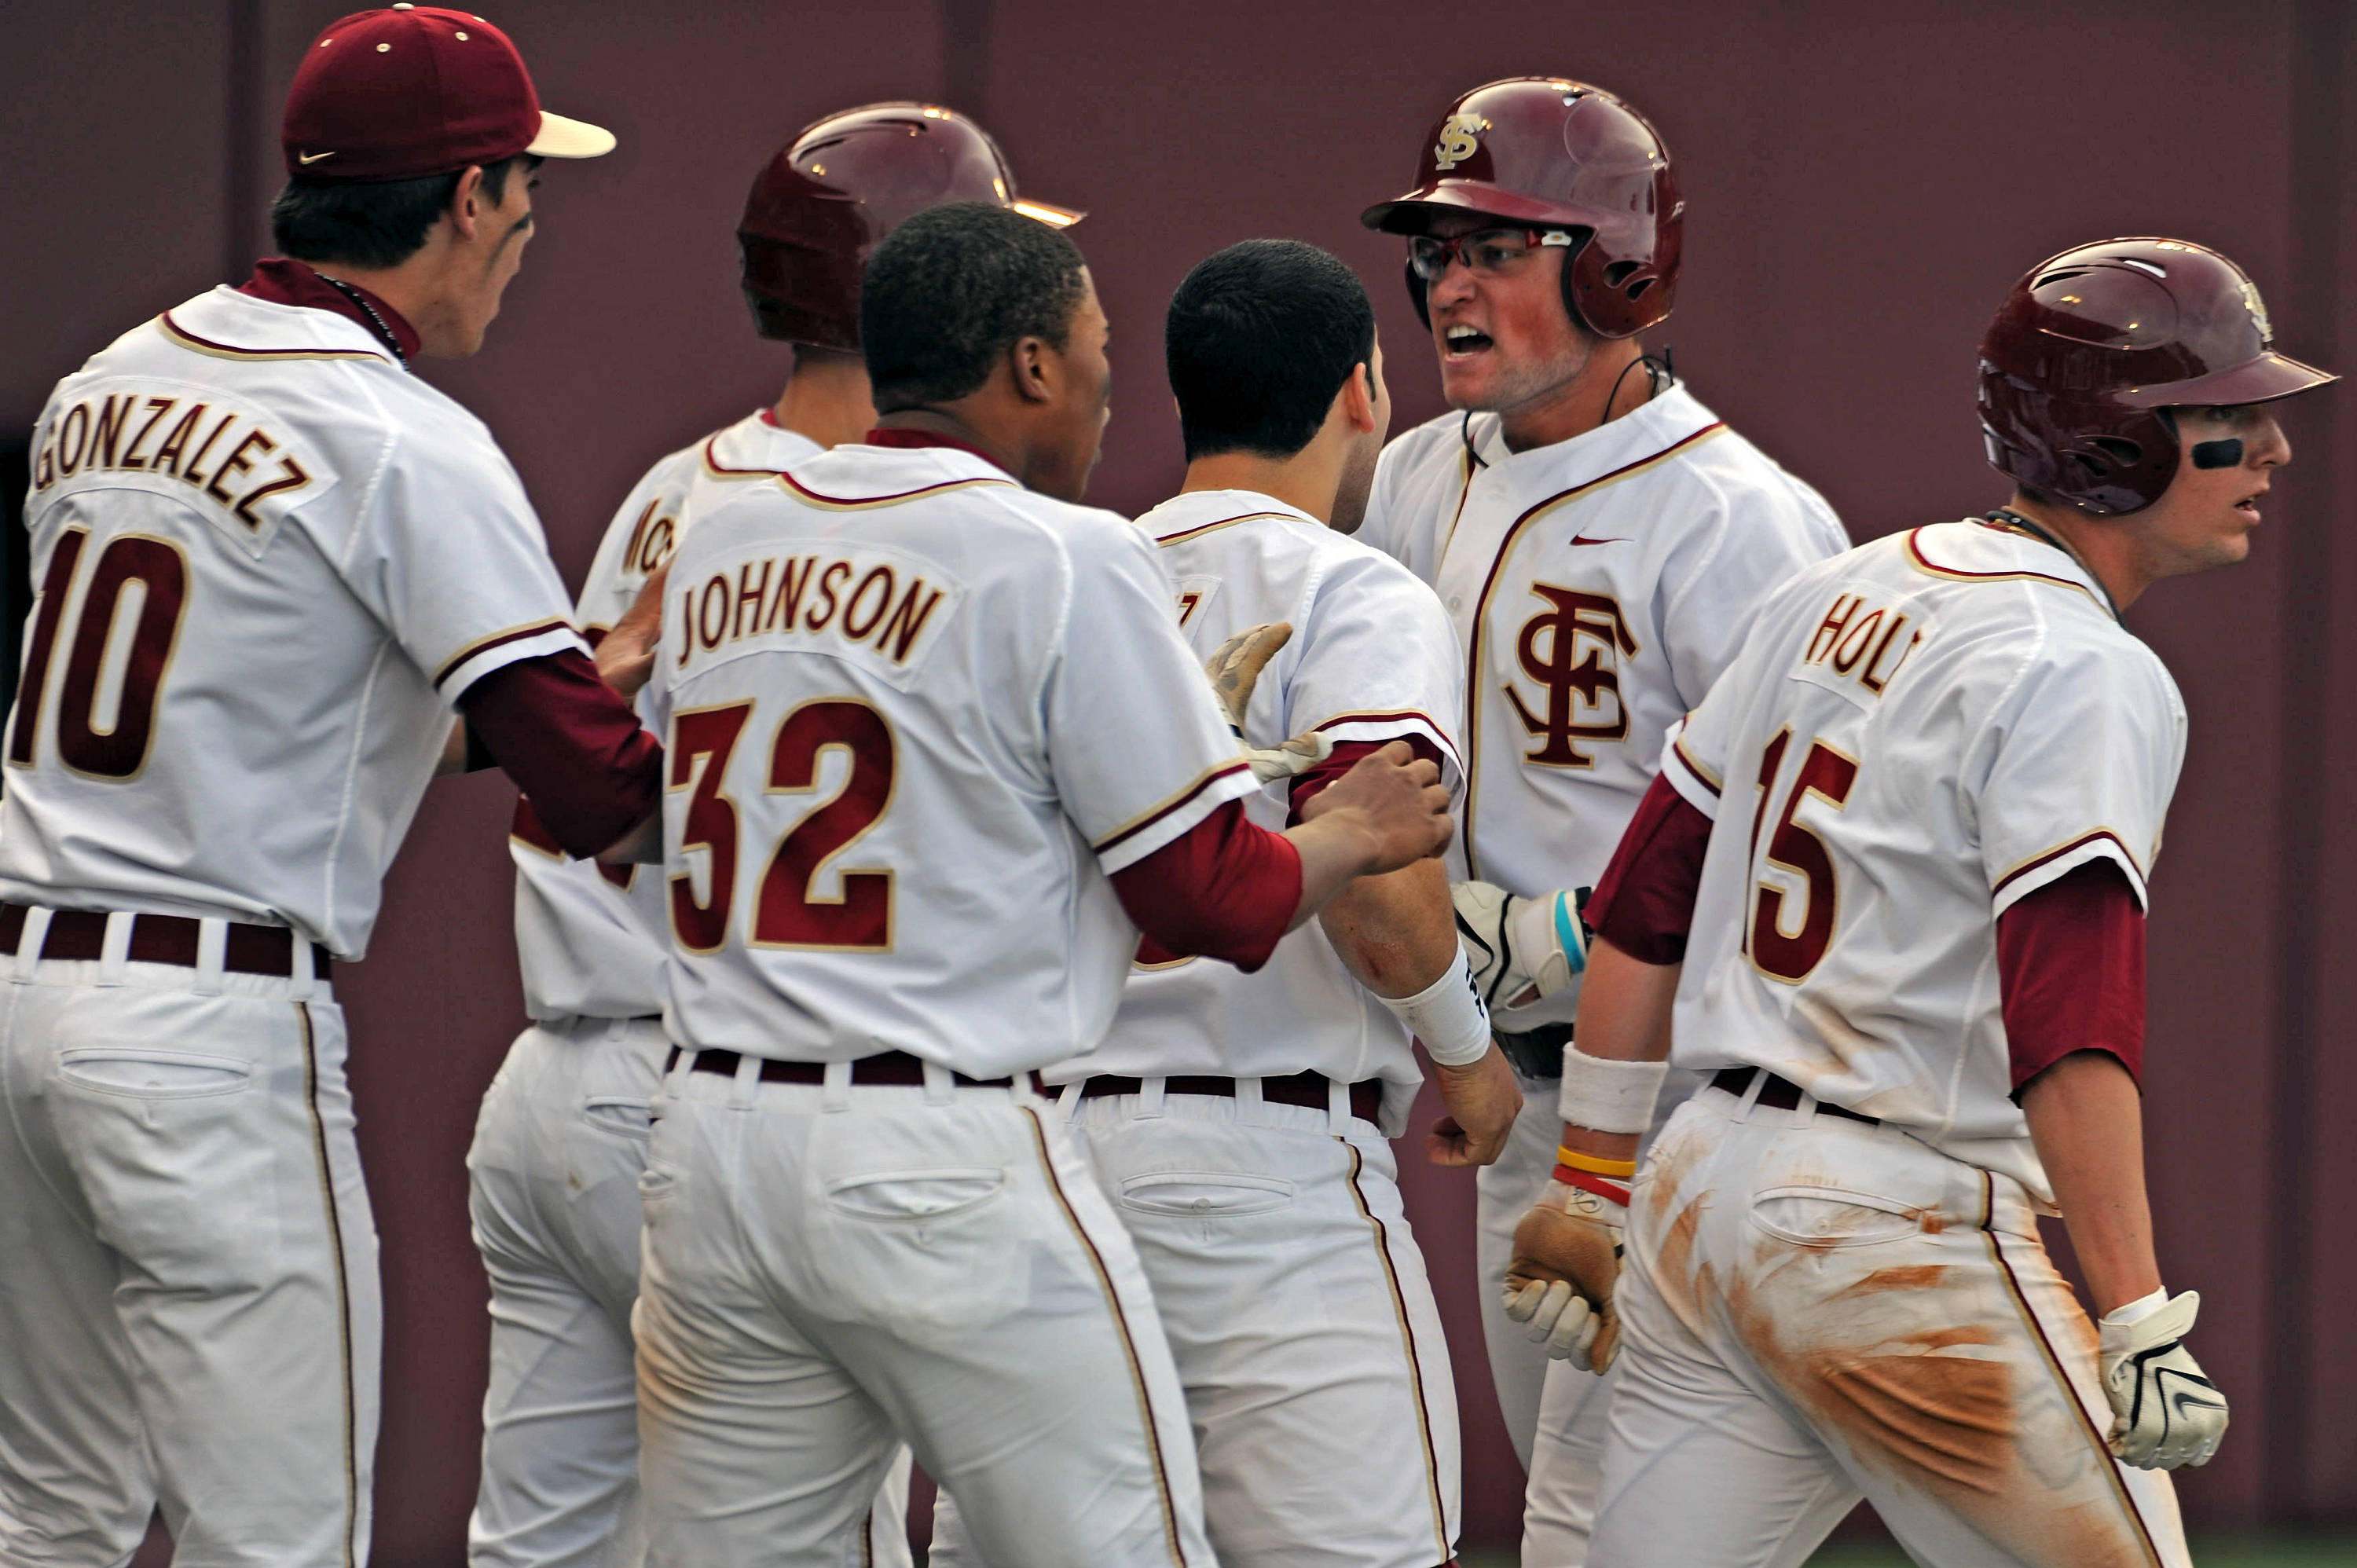 The Seminoles celebrate after scoring a run against the Panthers.